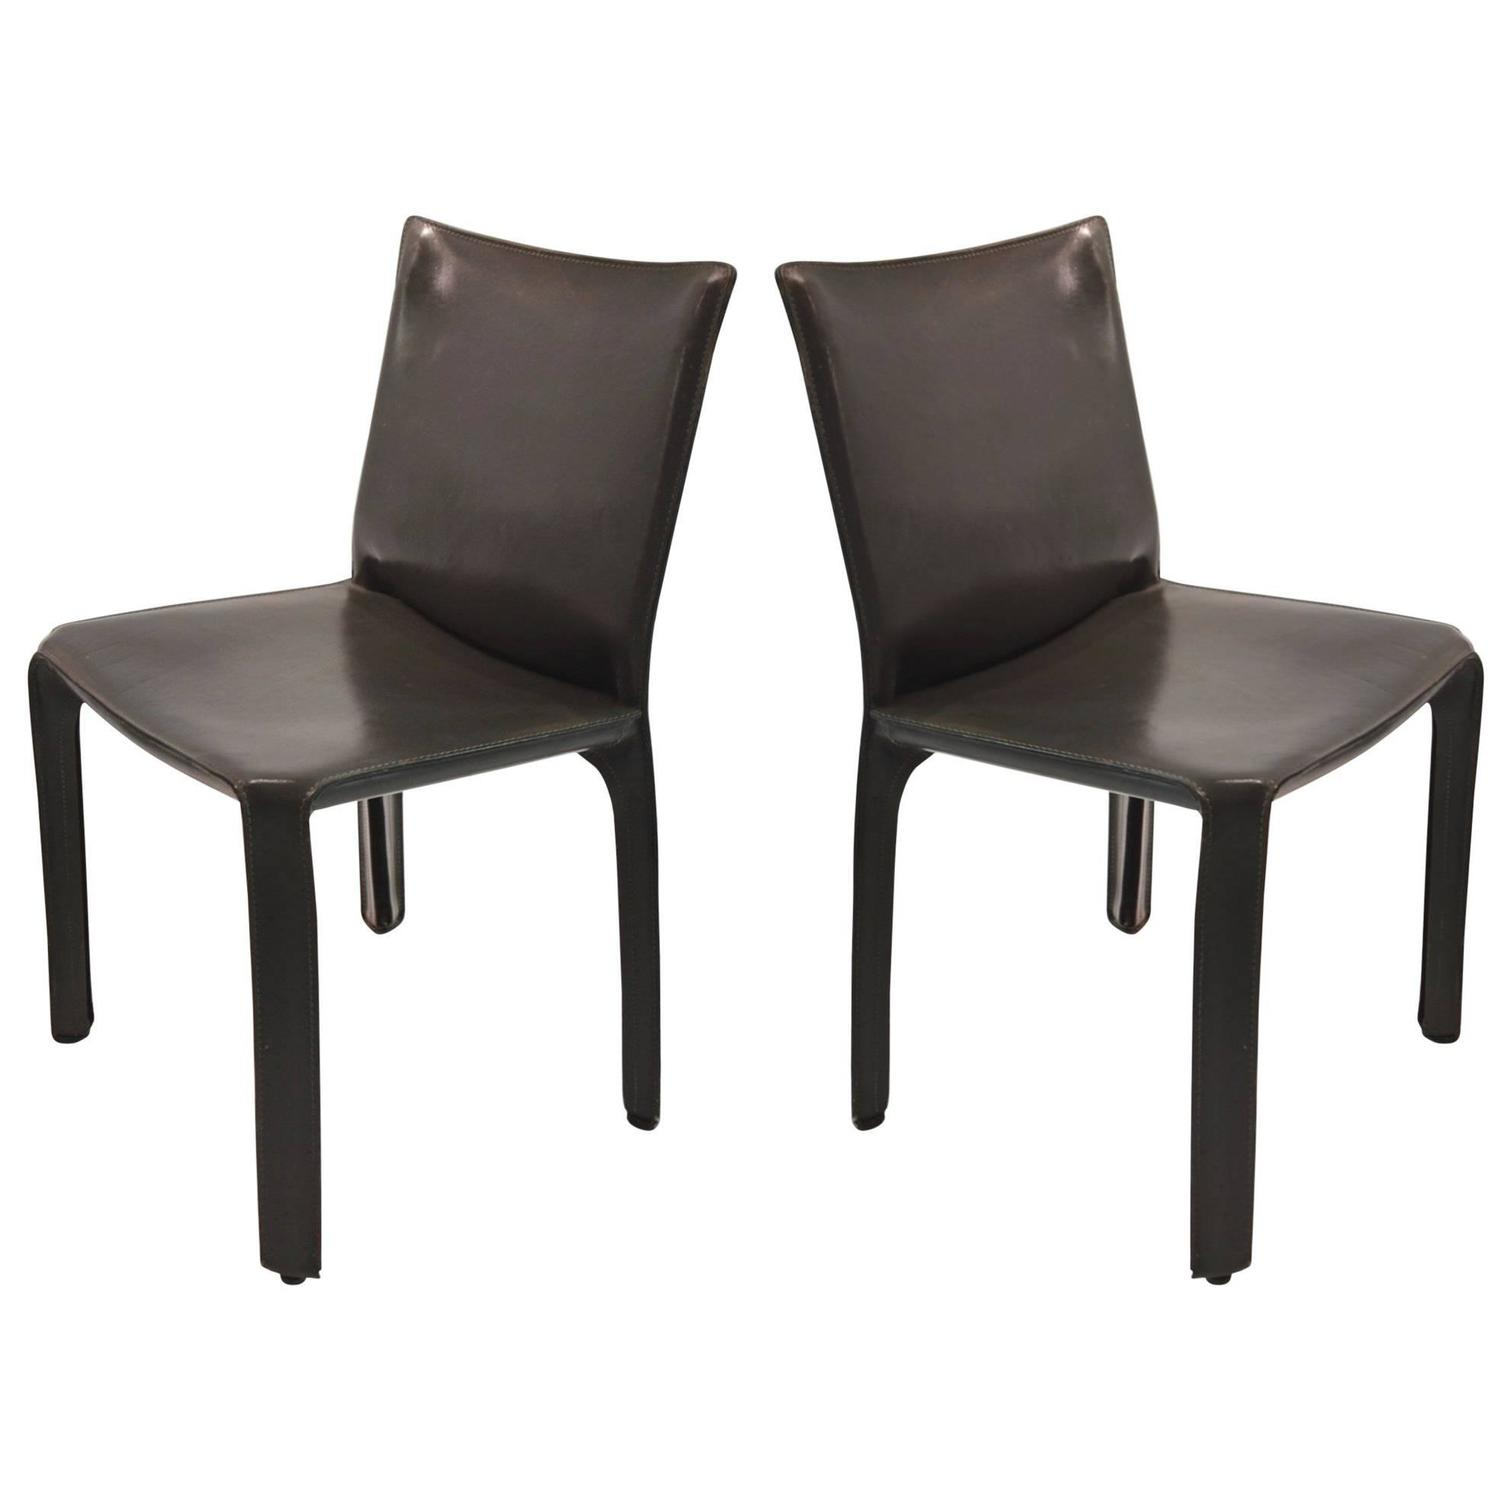 Mario Bellini Furniture Chairs Sofas Tables More 112 For – Mario Bellini Chair